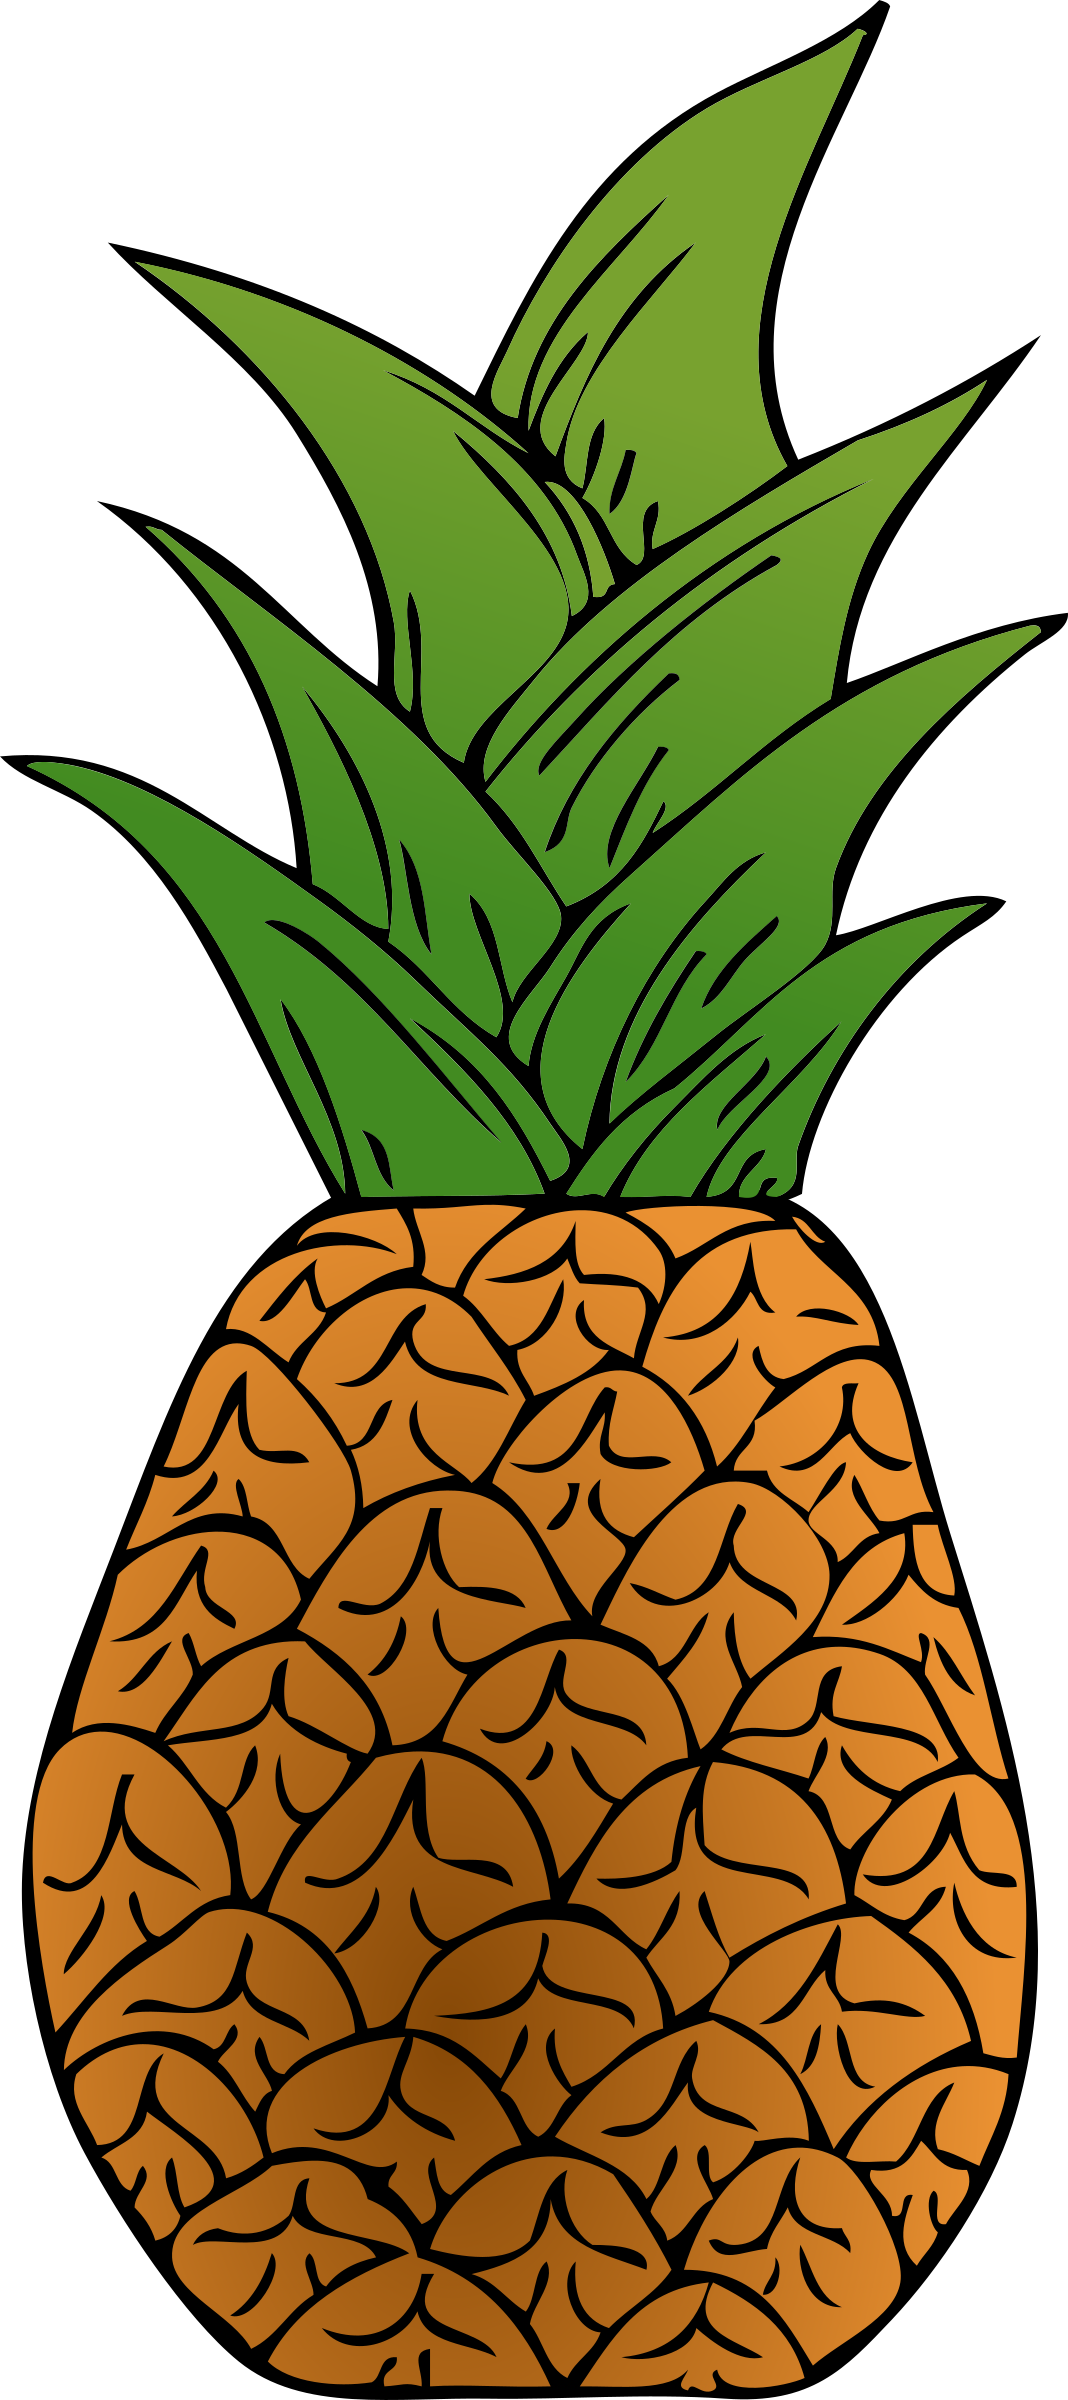 Alternative Pineapple by qubodup